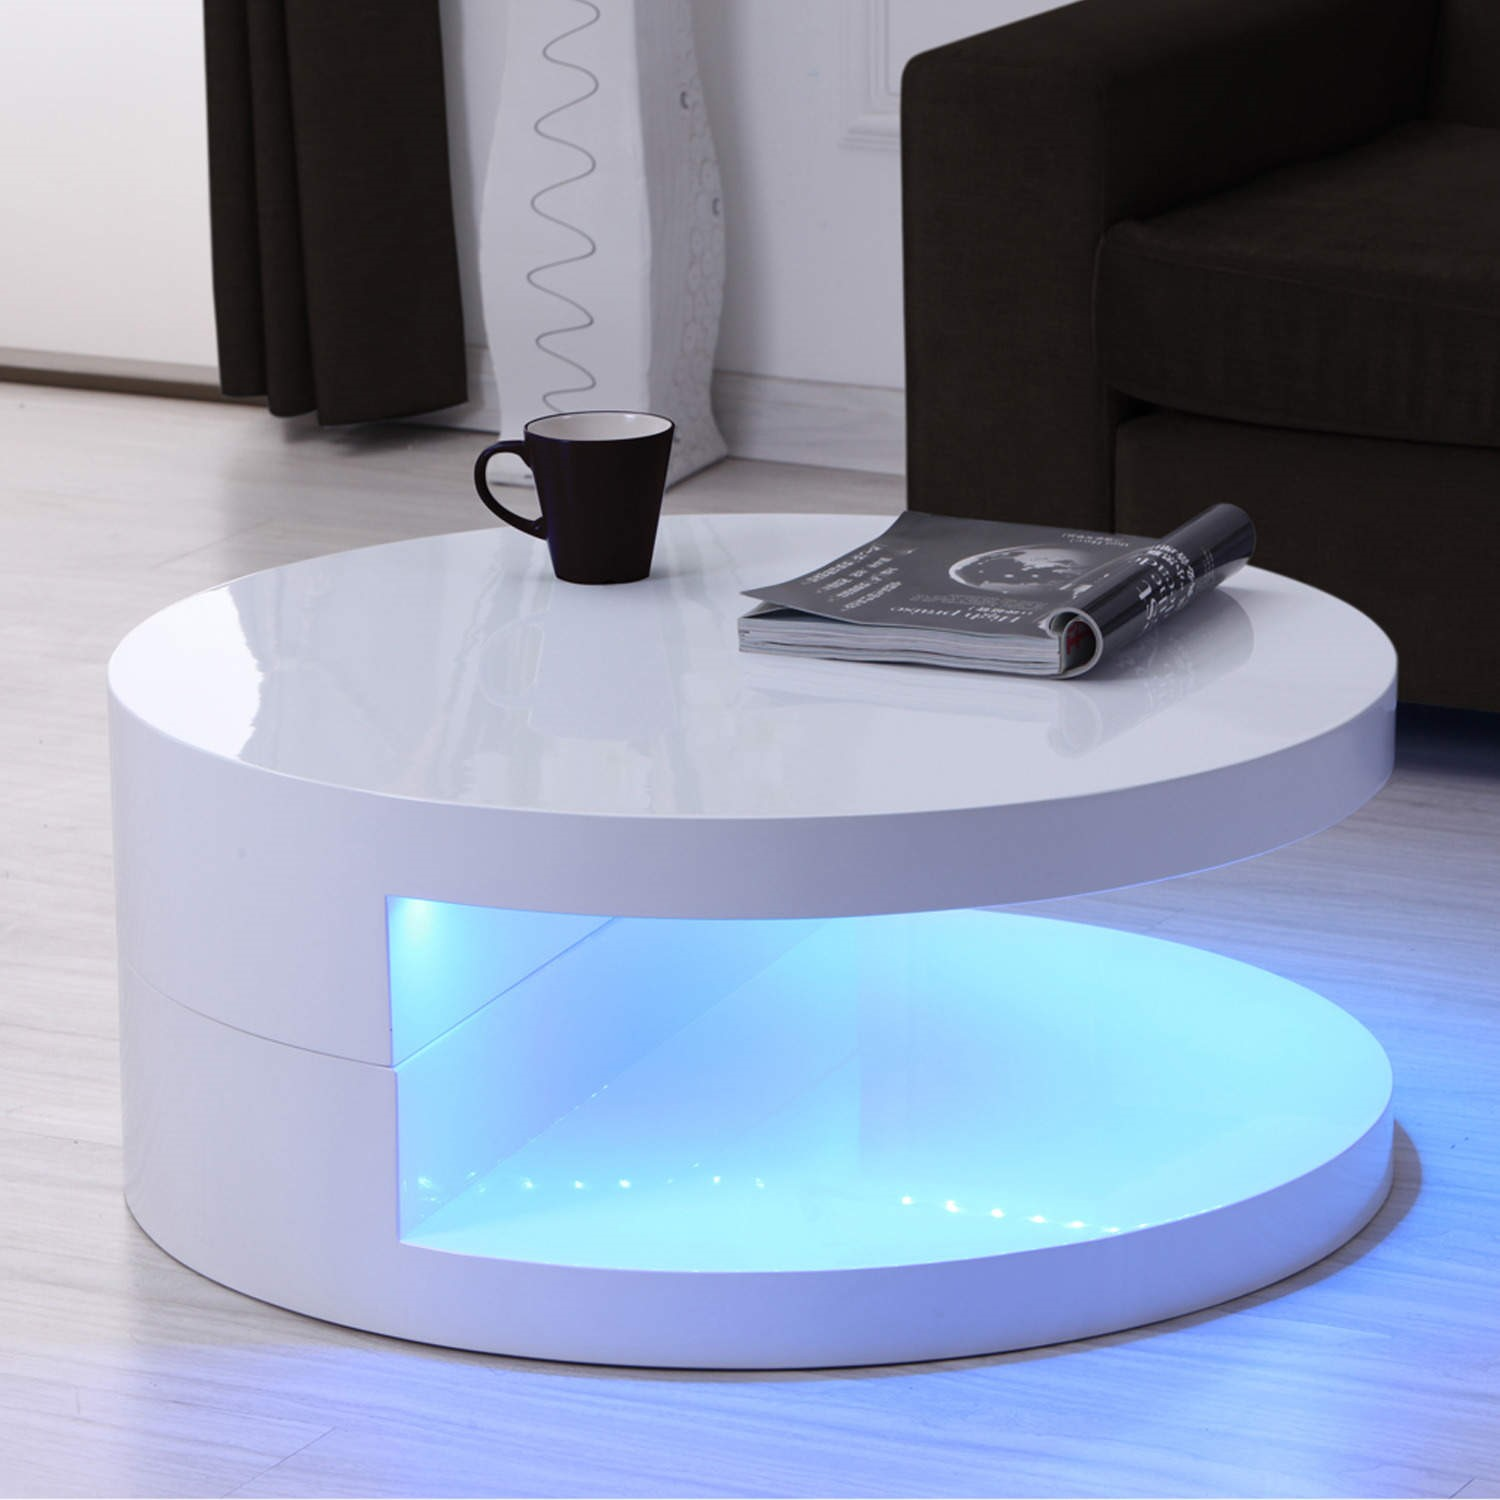 - GRADE A1 - Tiffany LED Round Top White High Gloss Coffee Table